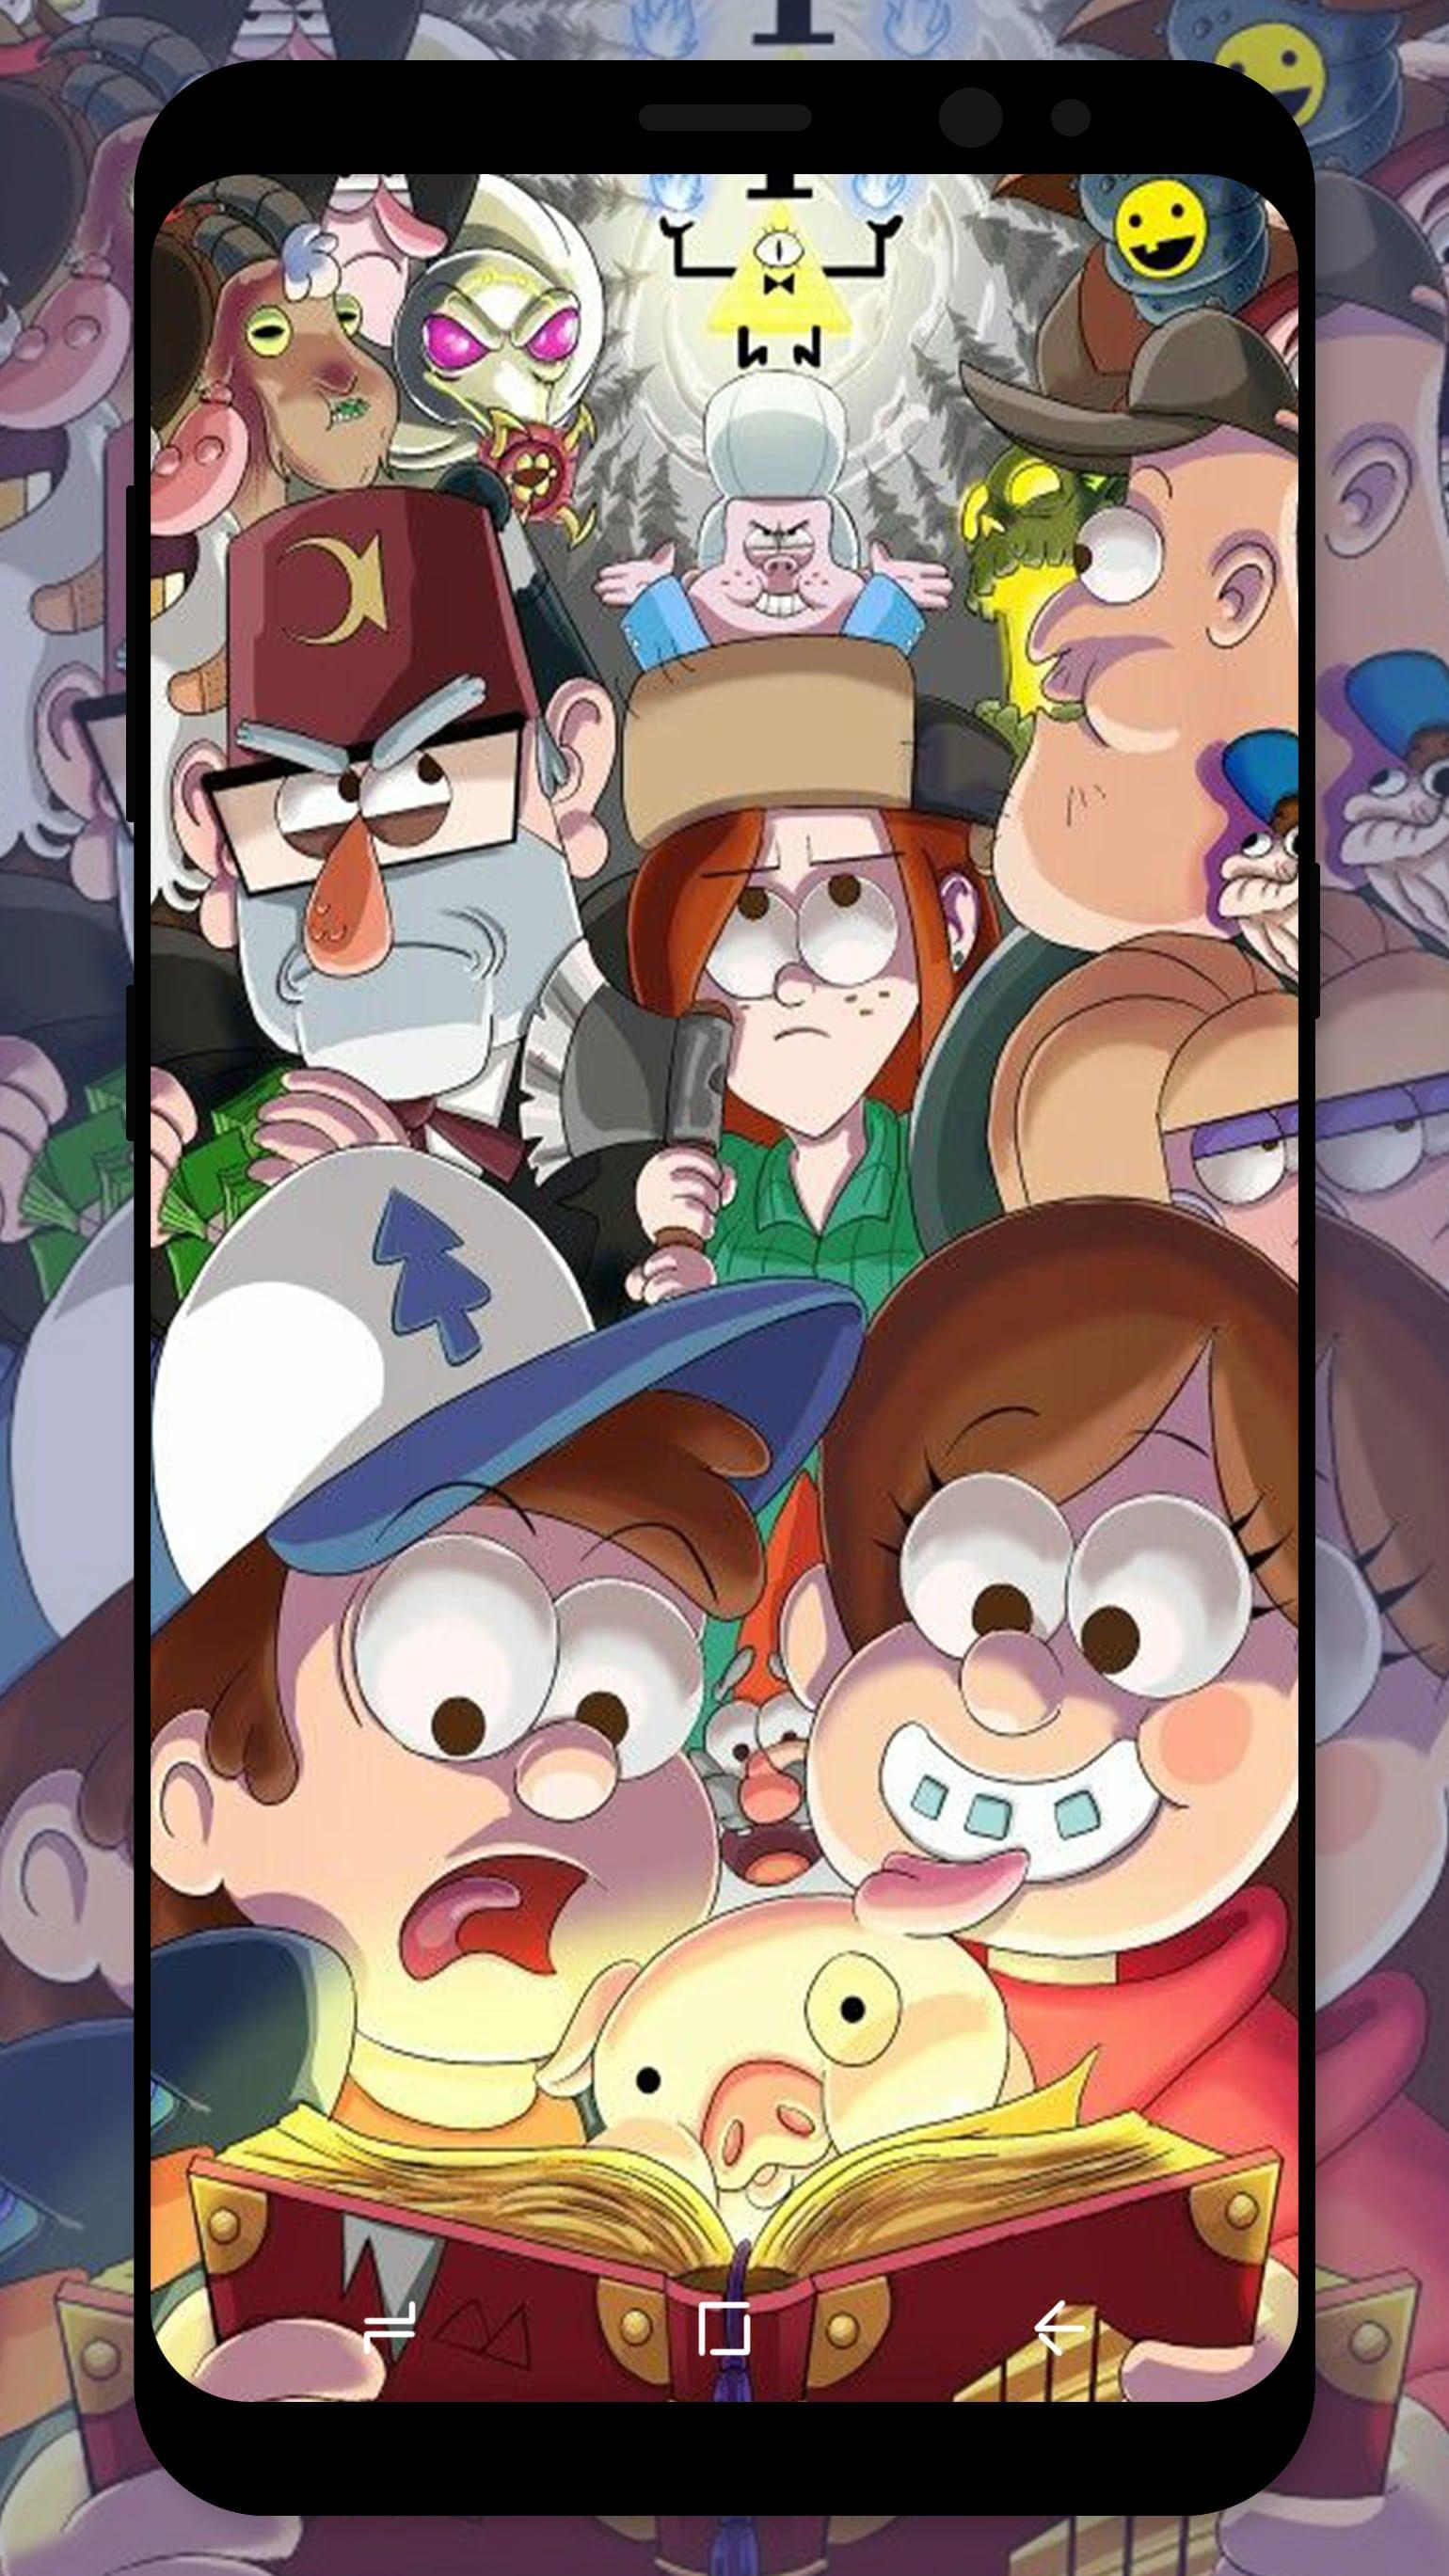 Gravity Falls HD wallpaper 2018 for Android - APK Download